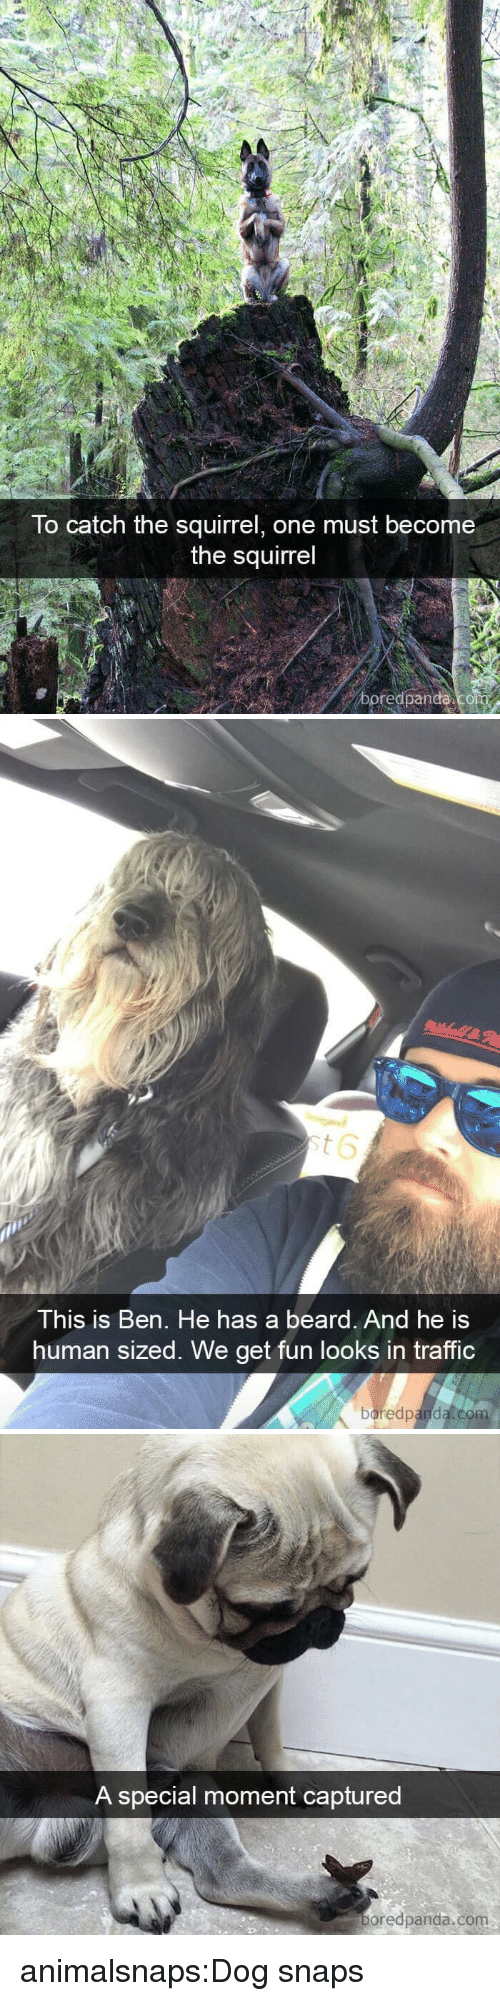 A Beard: To catch the squirrel, one must become  the squirrel  boredpanda   This is Ben. He has a beard. And he is  human sized. We get fun looks in traffic  boredpanda.co   A special moment captured  oredpanda.com animalsnaps:Dog snaps